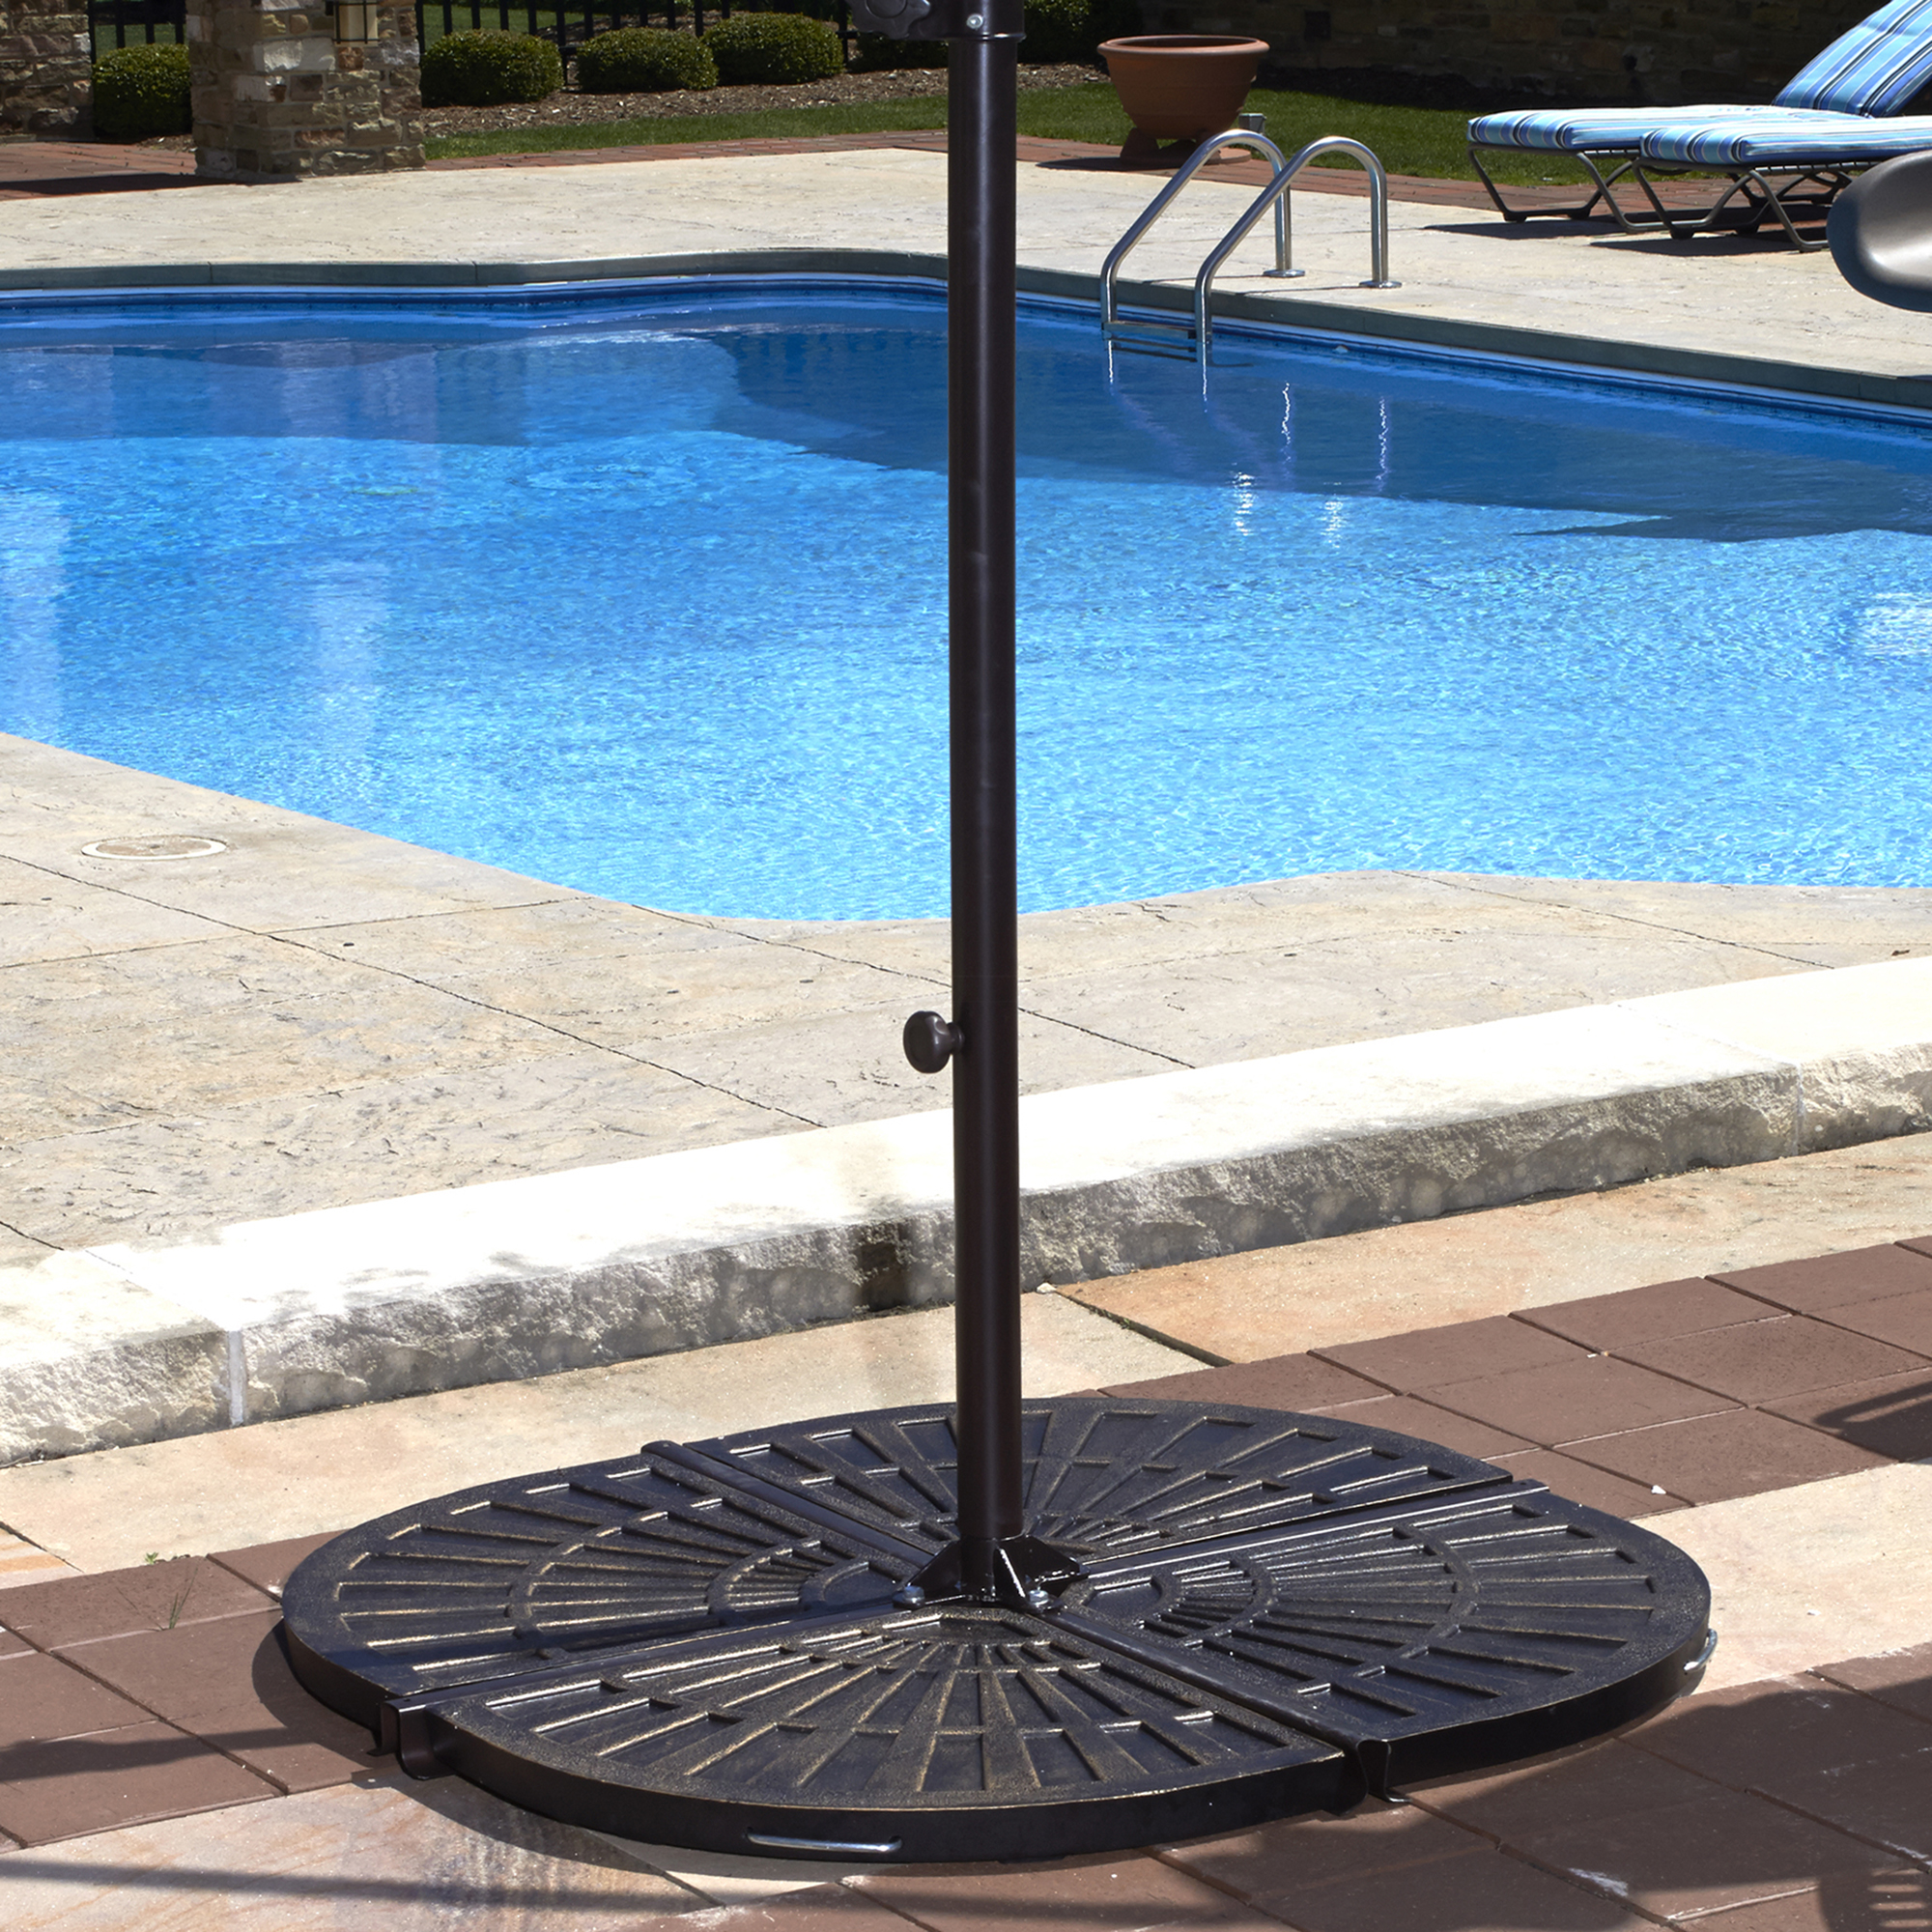 Island Umbrella (4) 30-lb Resin Umbrella Base Weights in Bronze by Blue Wave